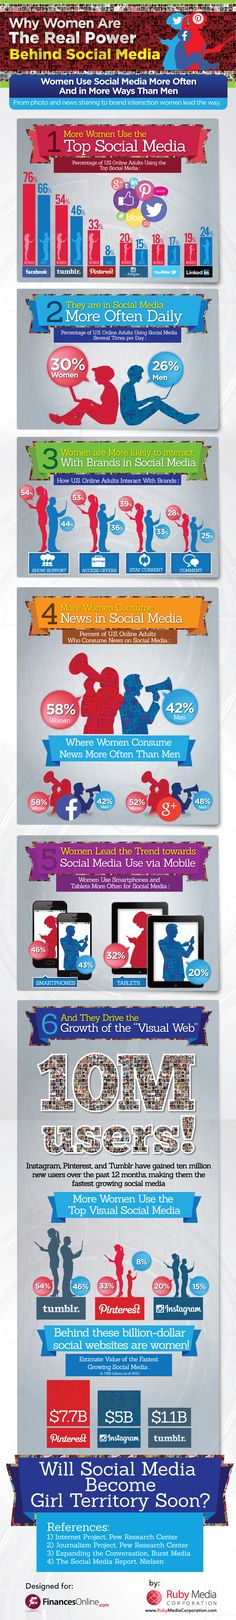 Why women are the real power behind social media - #SocialMedia #Infographic